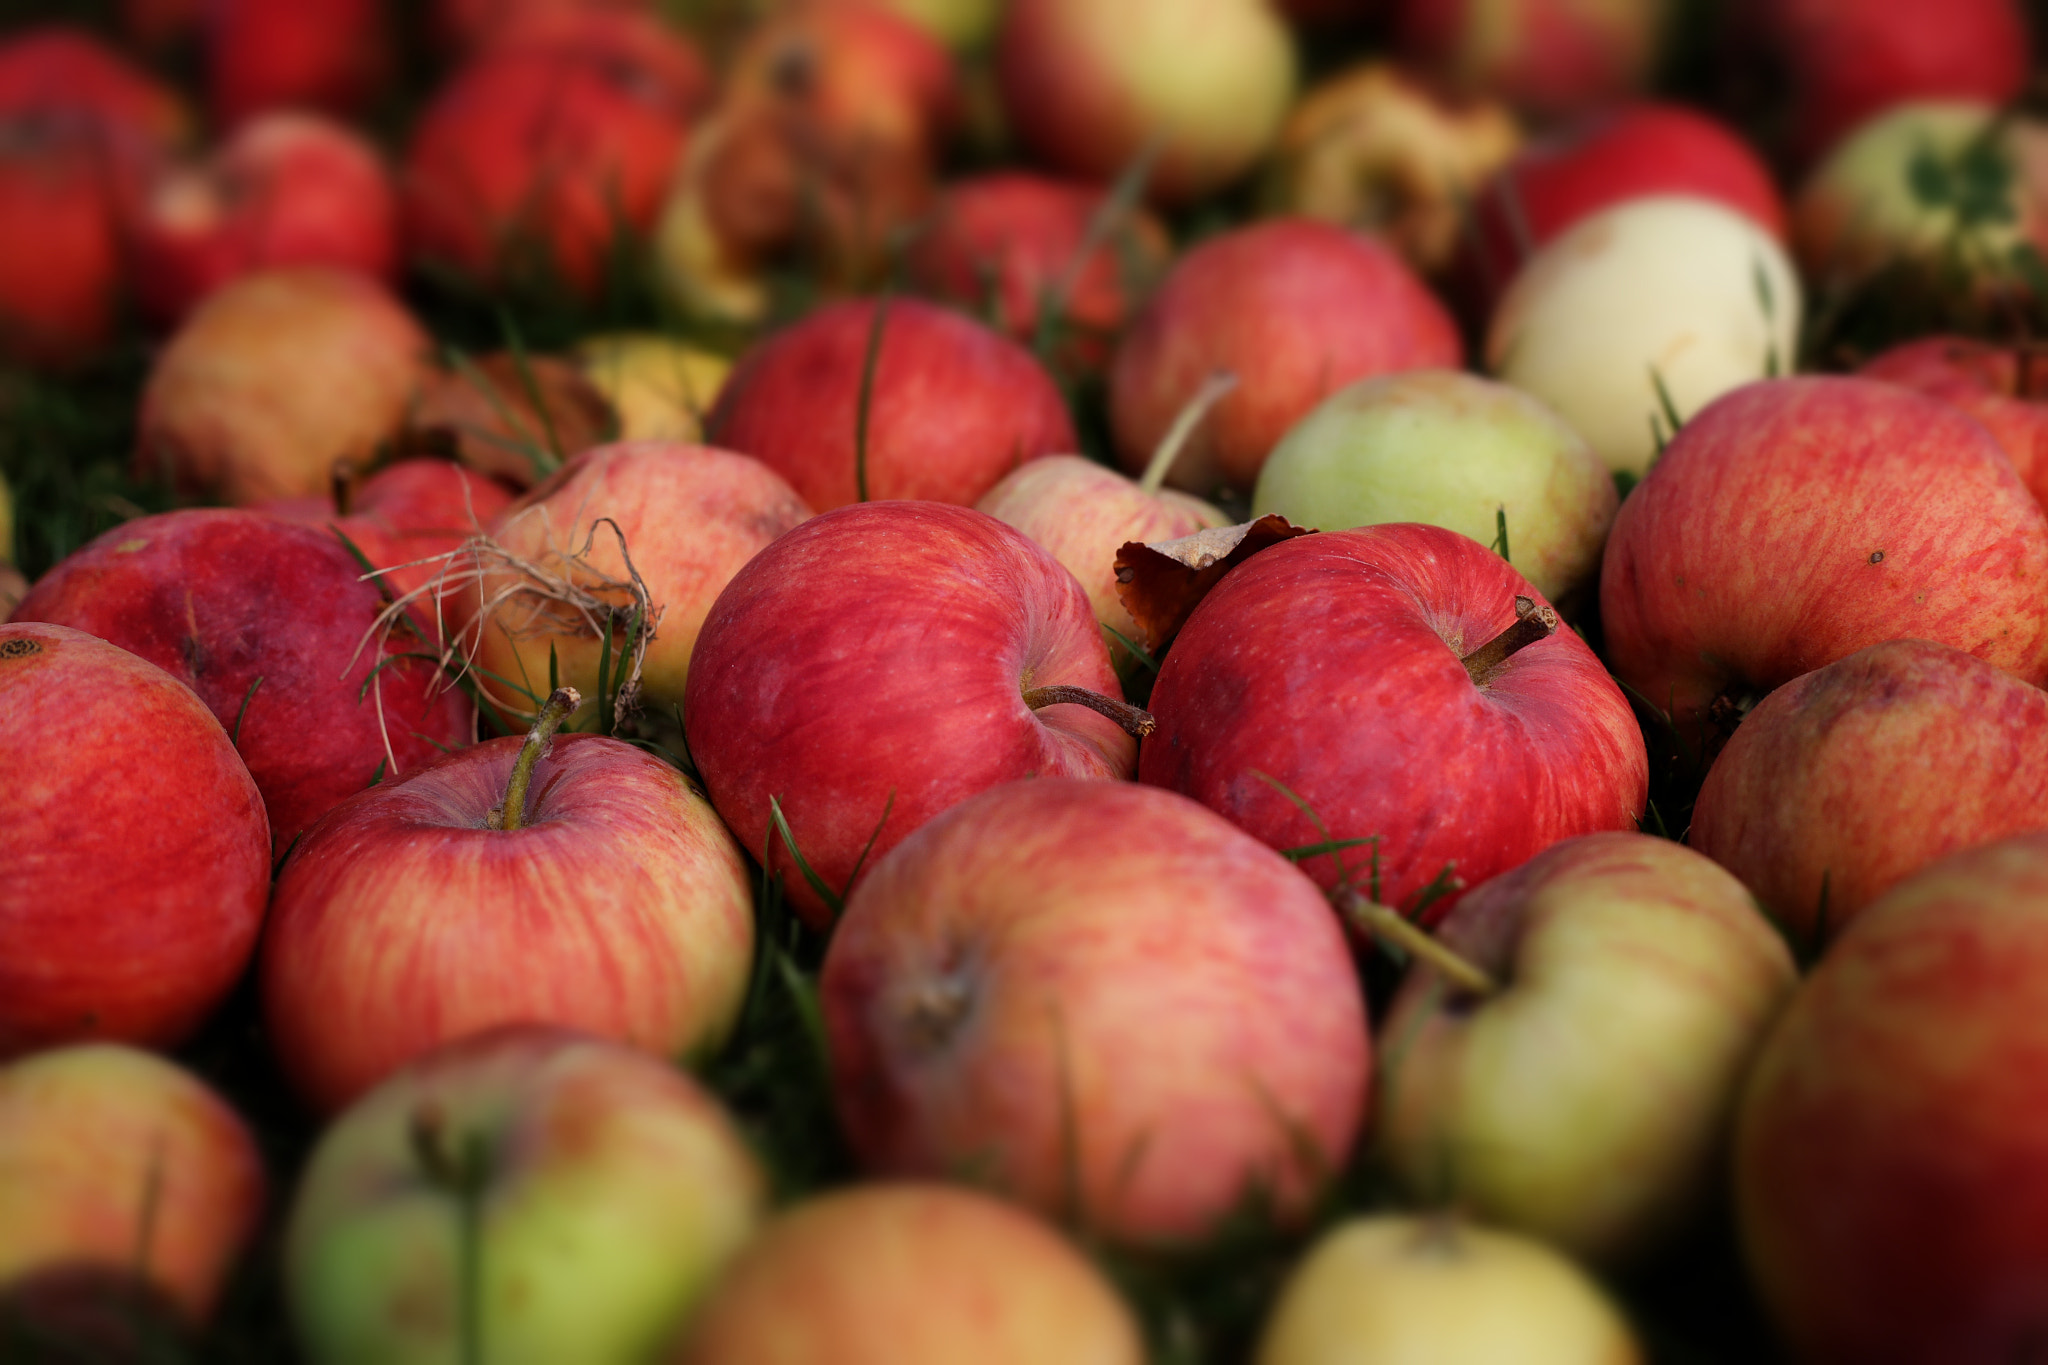 Photograph Just Apples by Florian Feuchtner on 500px